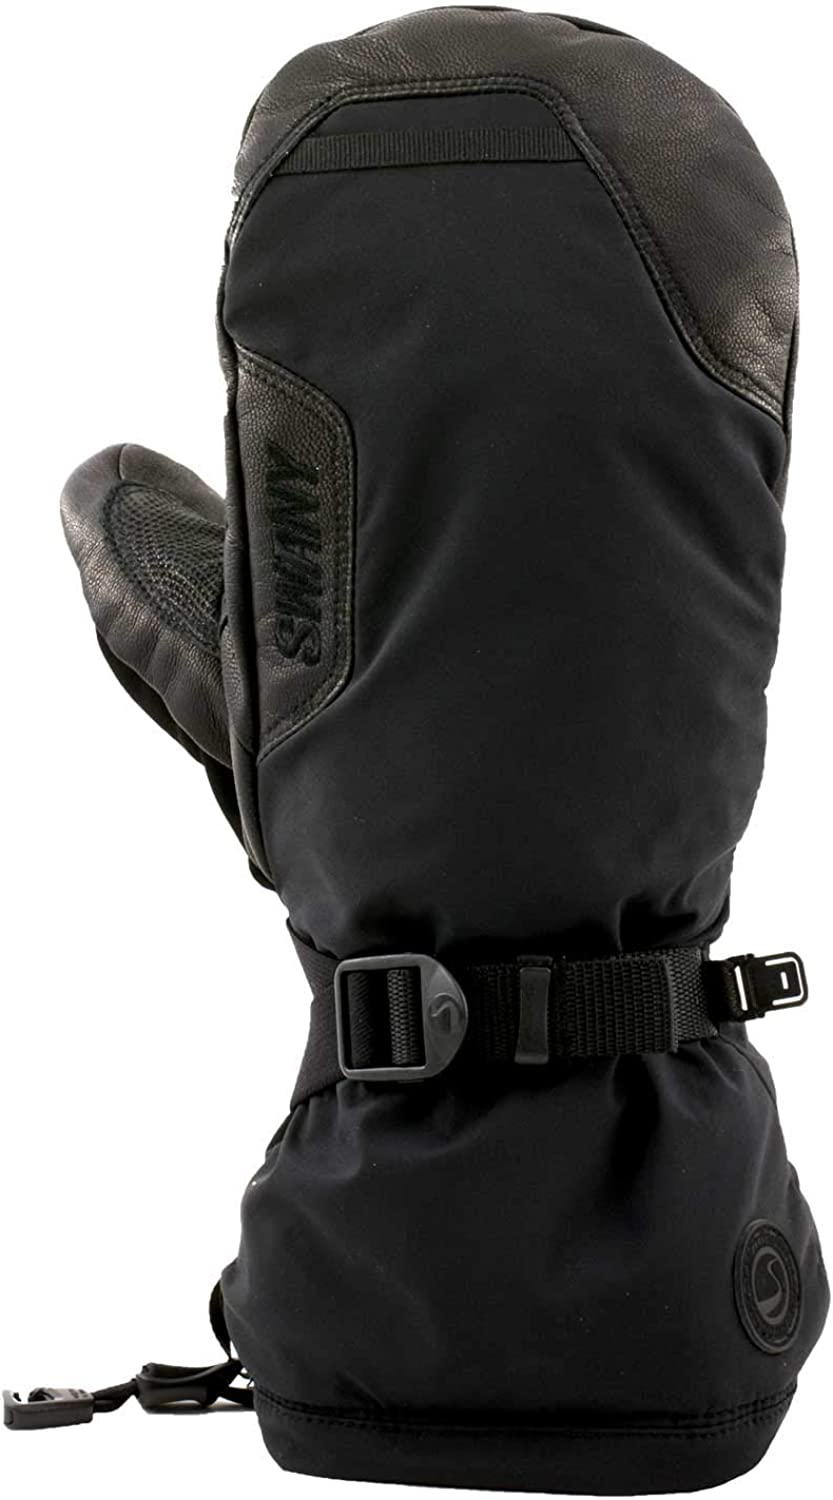 Swany Extreme 2-In-1 Mitten Mens